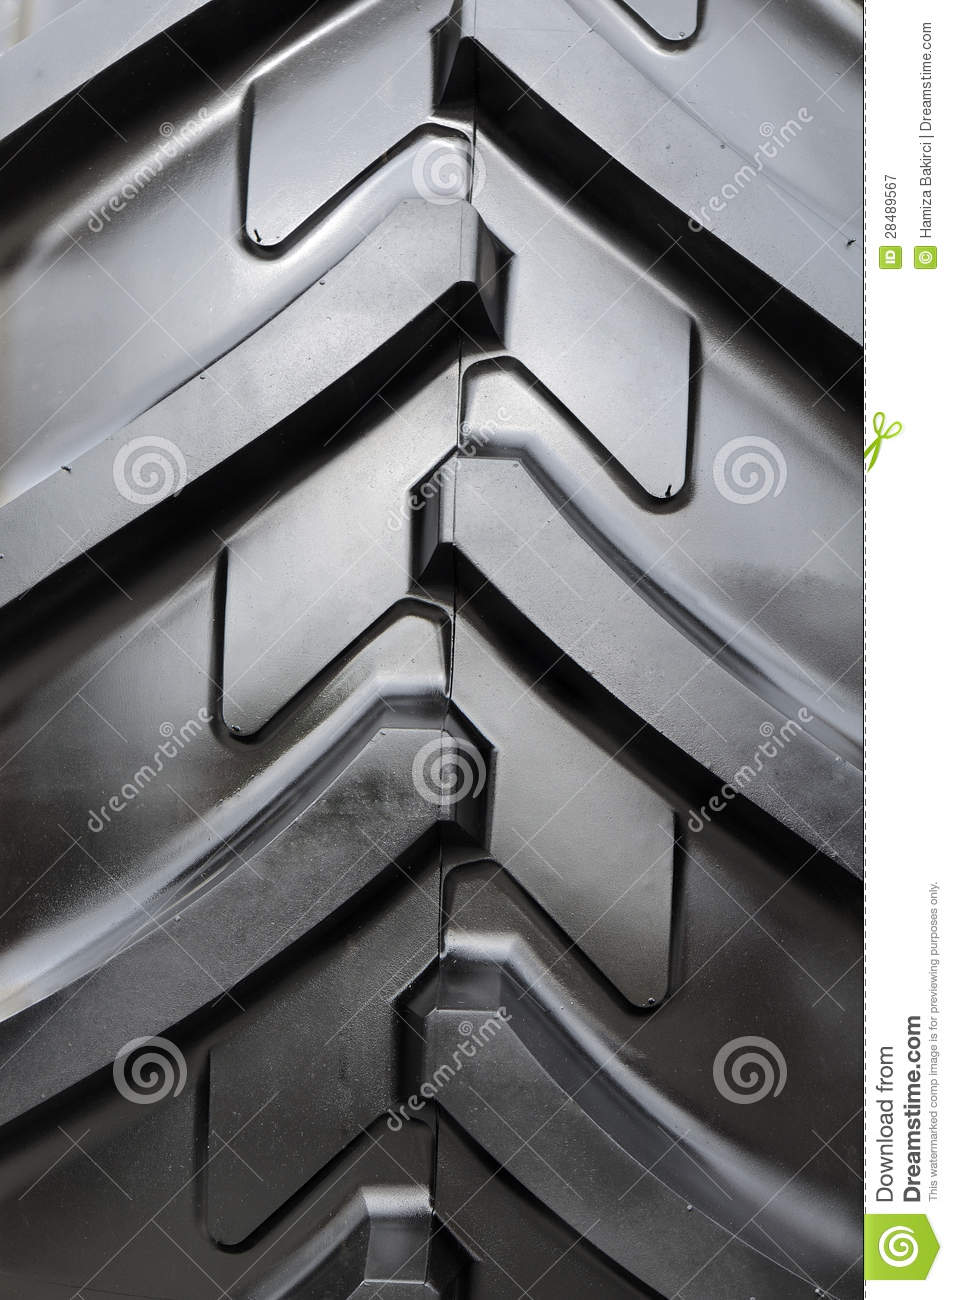 Tractor Tread Pattern : Tractor tire tread background stock image